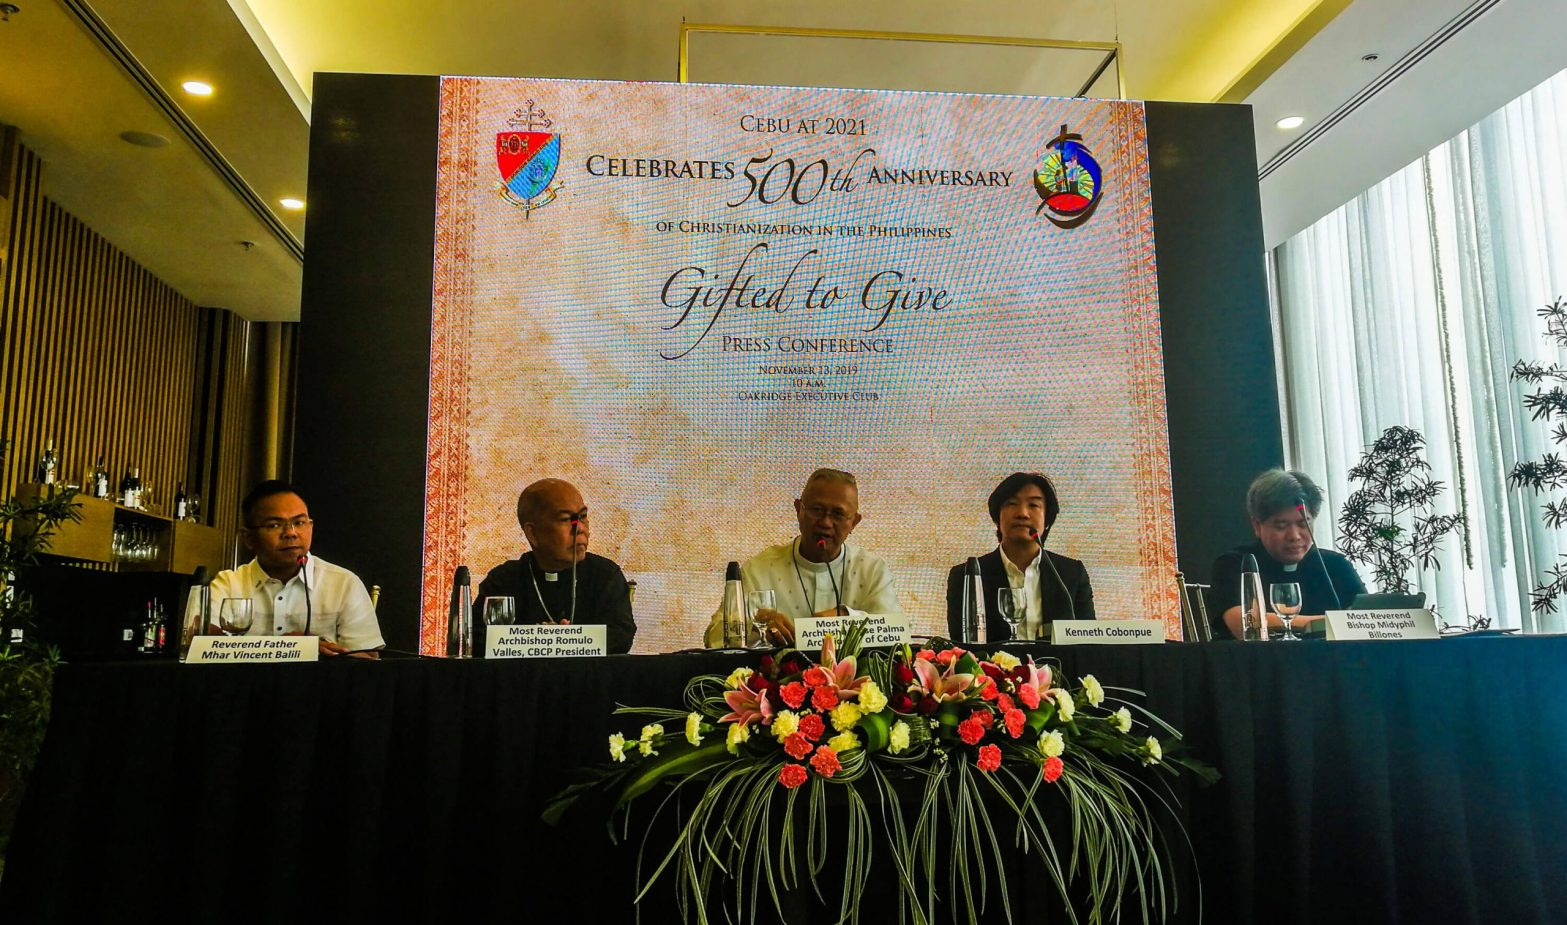 2021 EVENTS. Officials announce the official activities for the 500th anniversary of the Christianization in the Philippines. Present during the press conference in Oakridge Business Park are (from left) Fr. Mhar Vincent Balili; Davao Archbishop Romulo Valles, who is also the CBCP president; Cebu Archbishop Jose Palma, designer Kenneth Cobonpue, who heads the Visayas Quincentennial Committee; and Cebu Auxiliary Bishop Midyphil Billones.